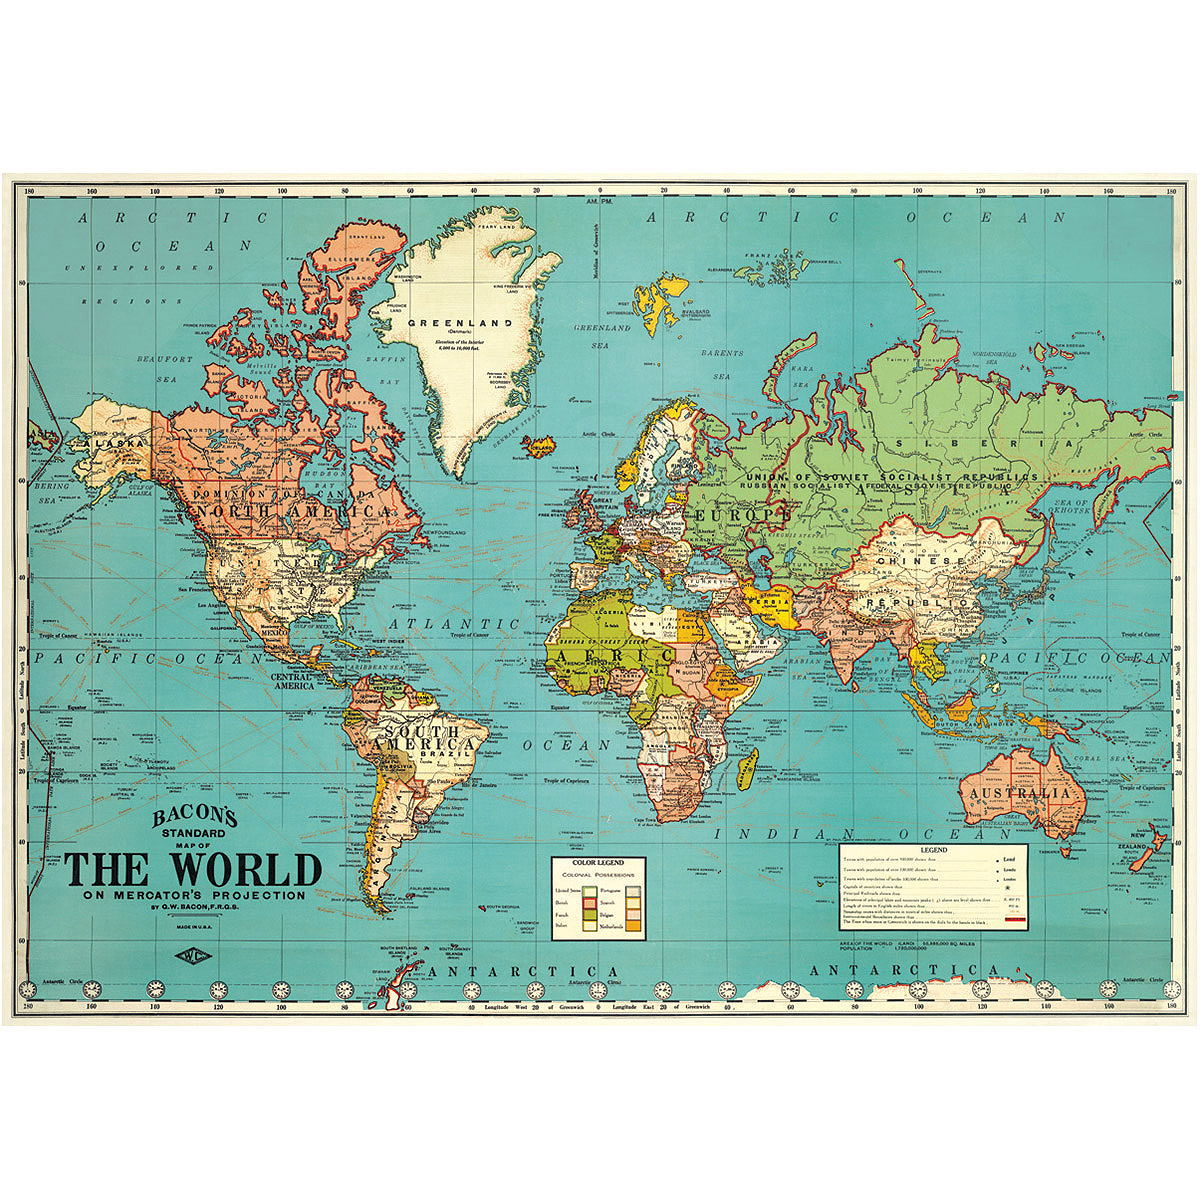 Bacons political world travel map poster vintage style paper political world map vintage art travel poster close gumiabroncs Images